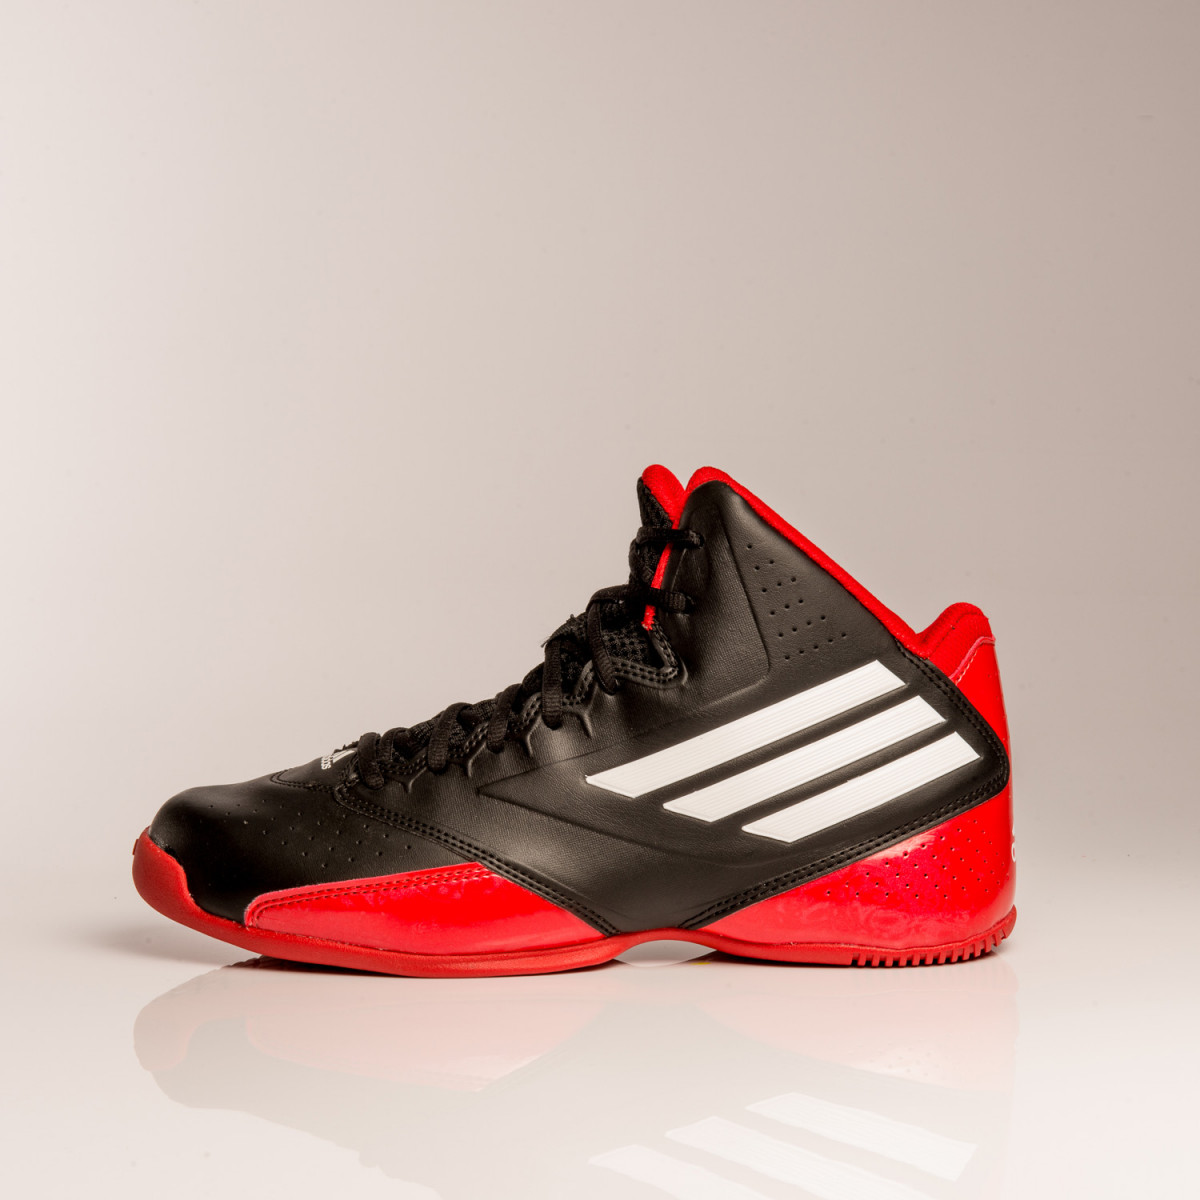 ZAPATILLAS ADIDAS 3 SERIES 2014